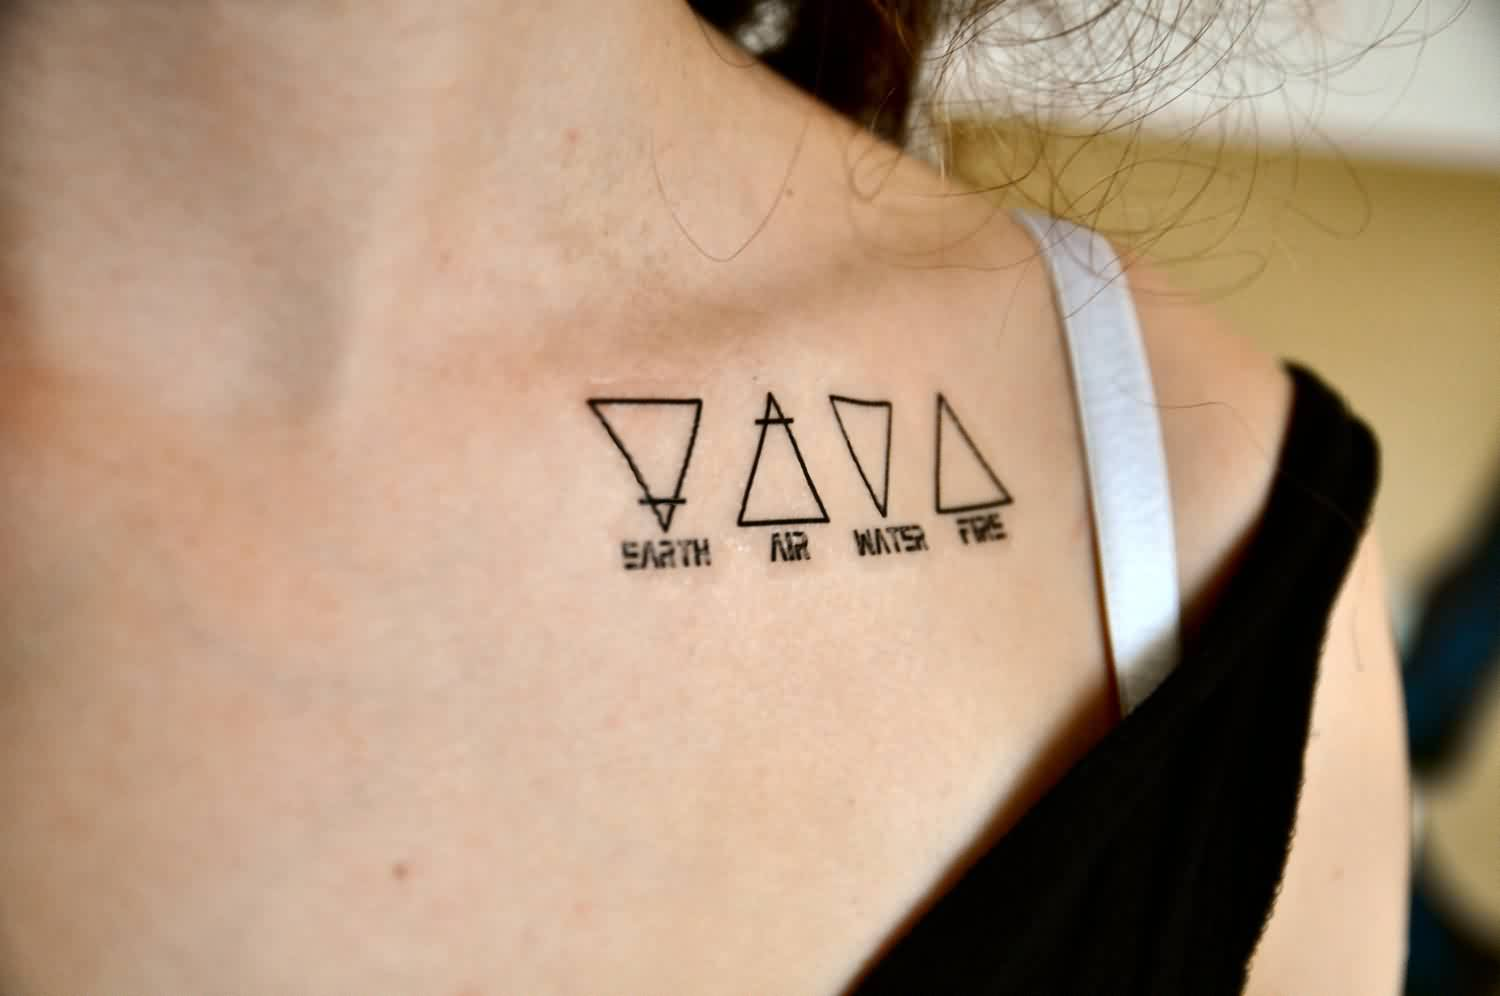 Earth Air Water Fire - Triangle Tattoos